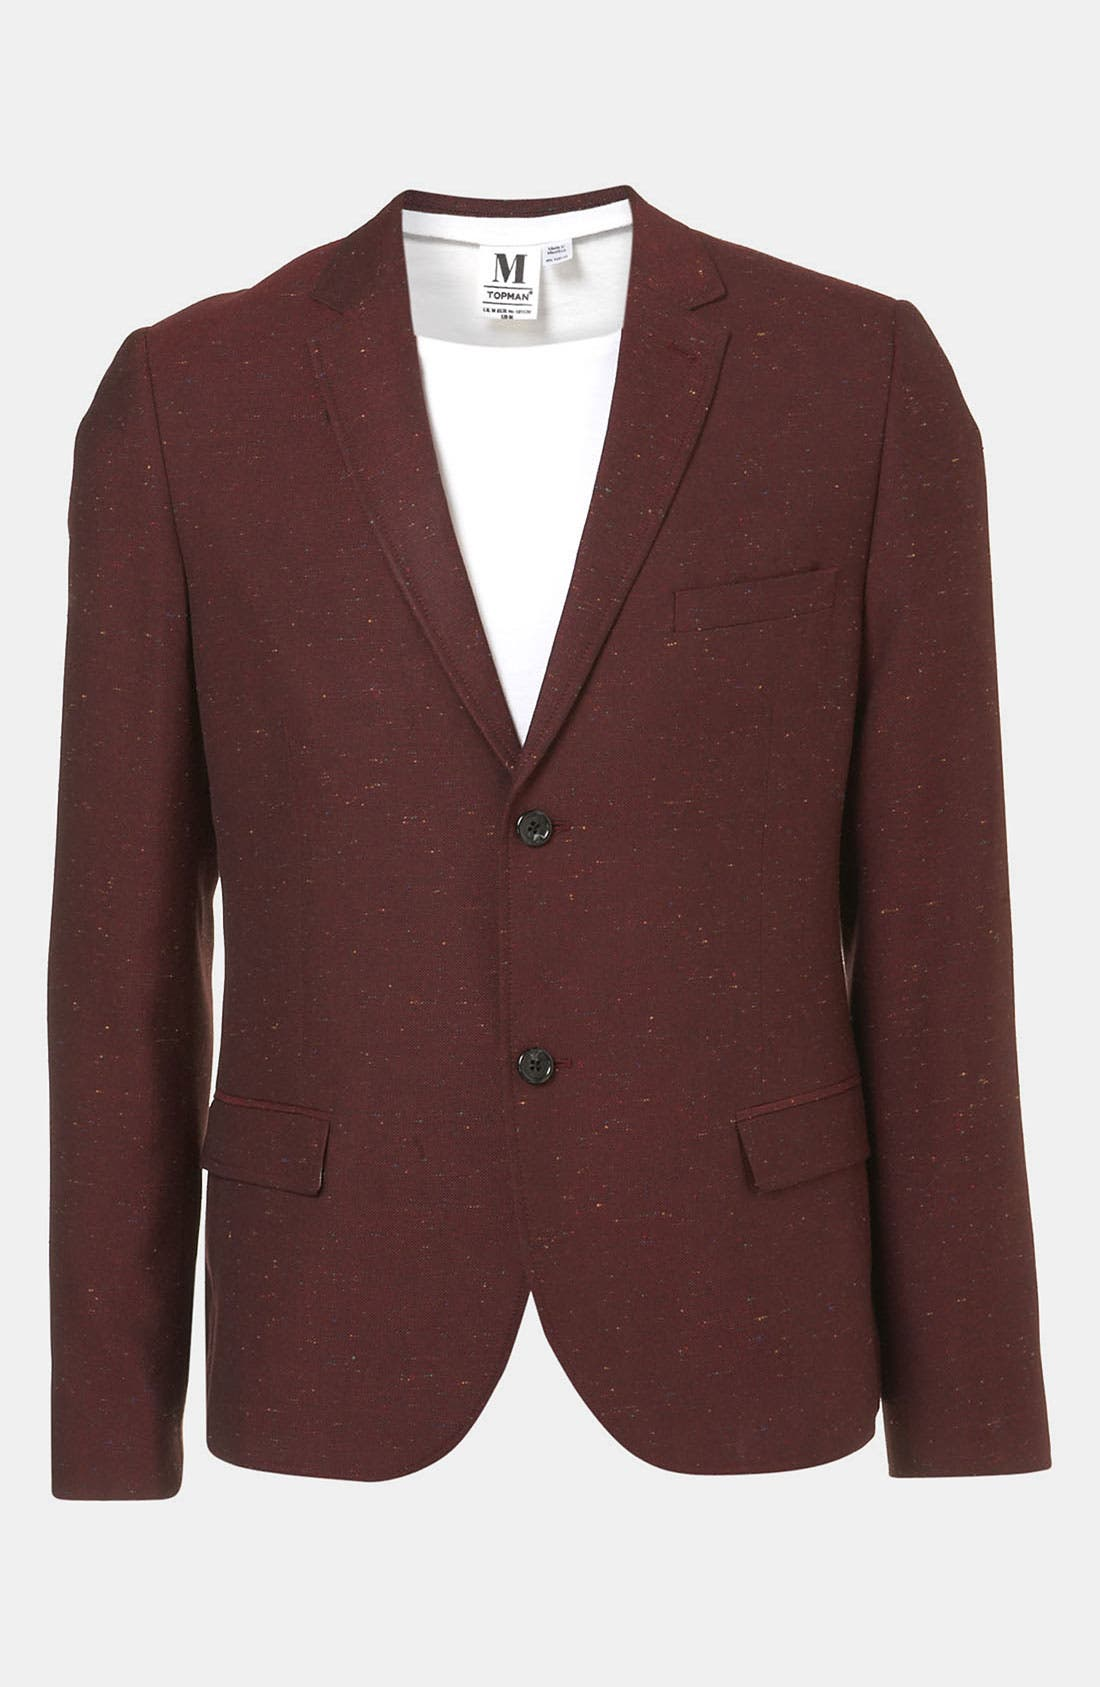 Main Image - Topman 'Oxford' Skinny Fit Blazer